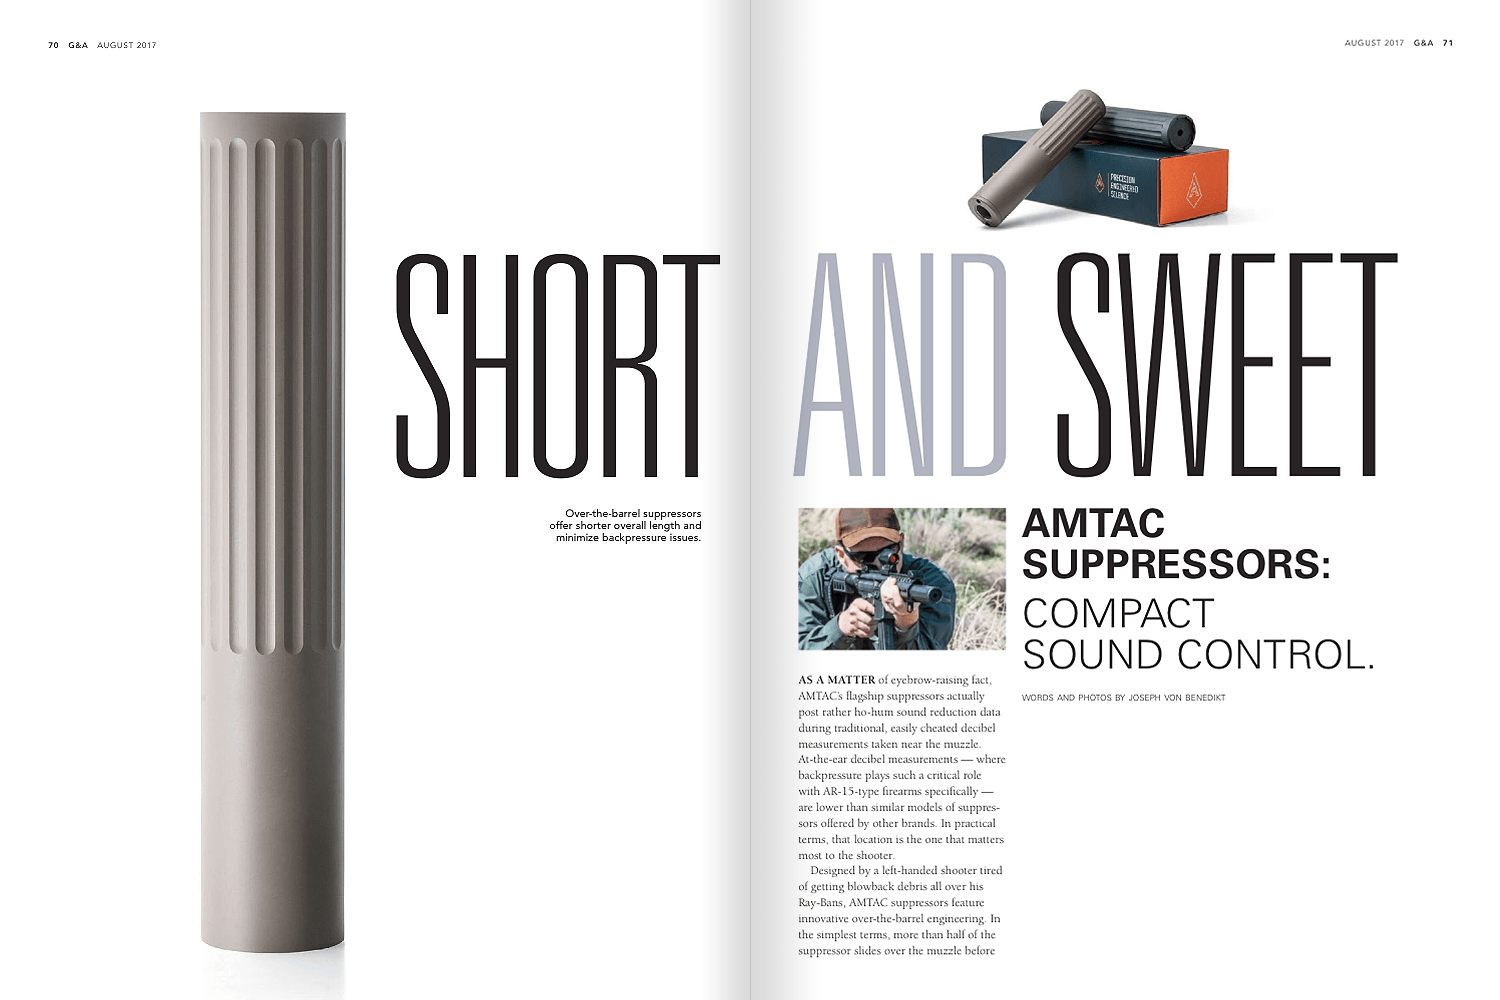 Guns and Ammo AMTAC Suppressors